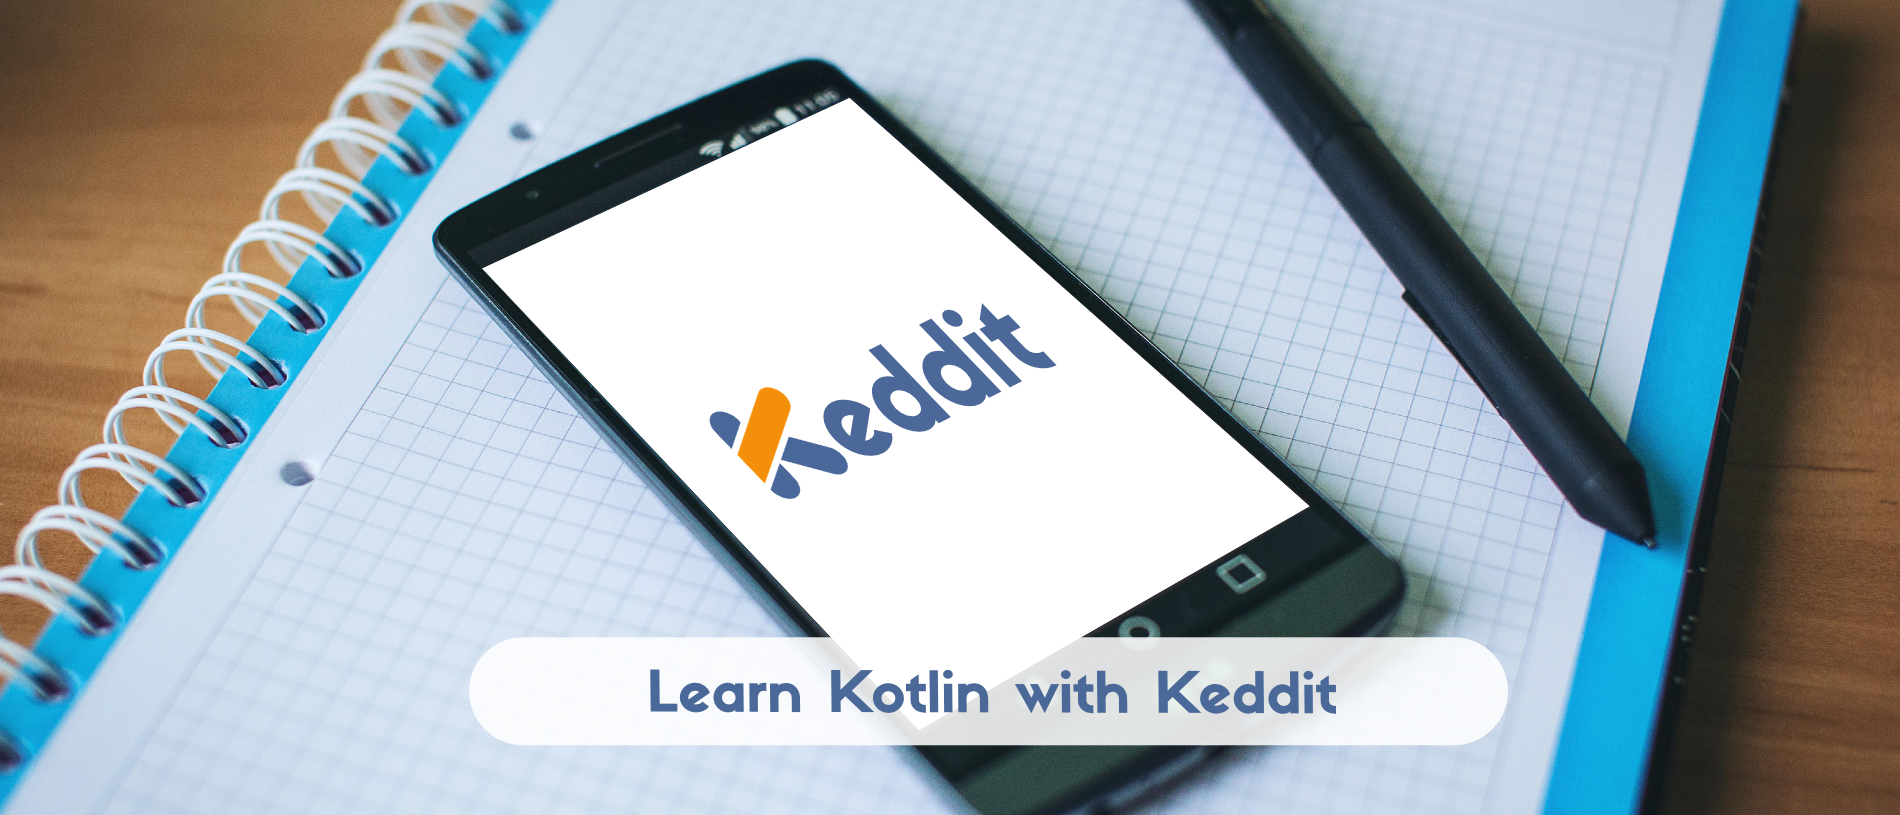 How to Create Reddit like Android Kotlin app Step by Step » Tell Me